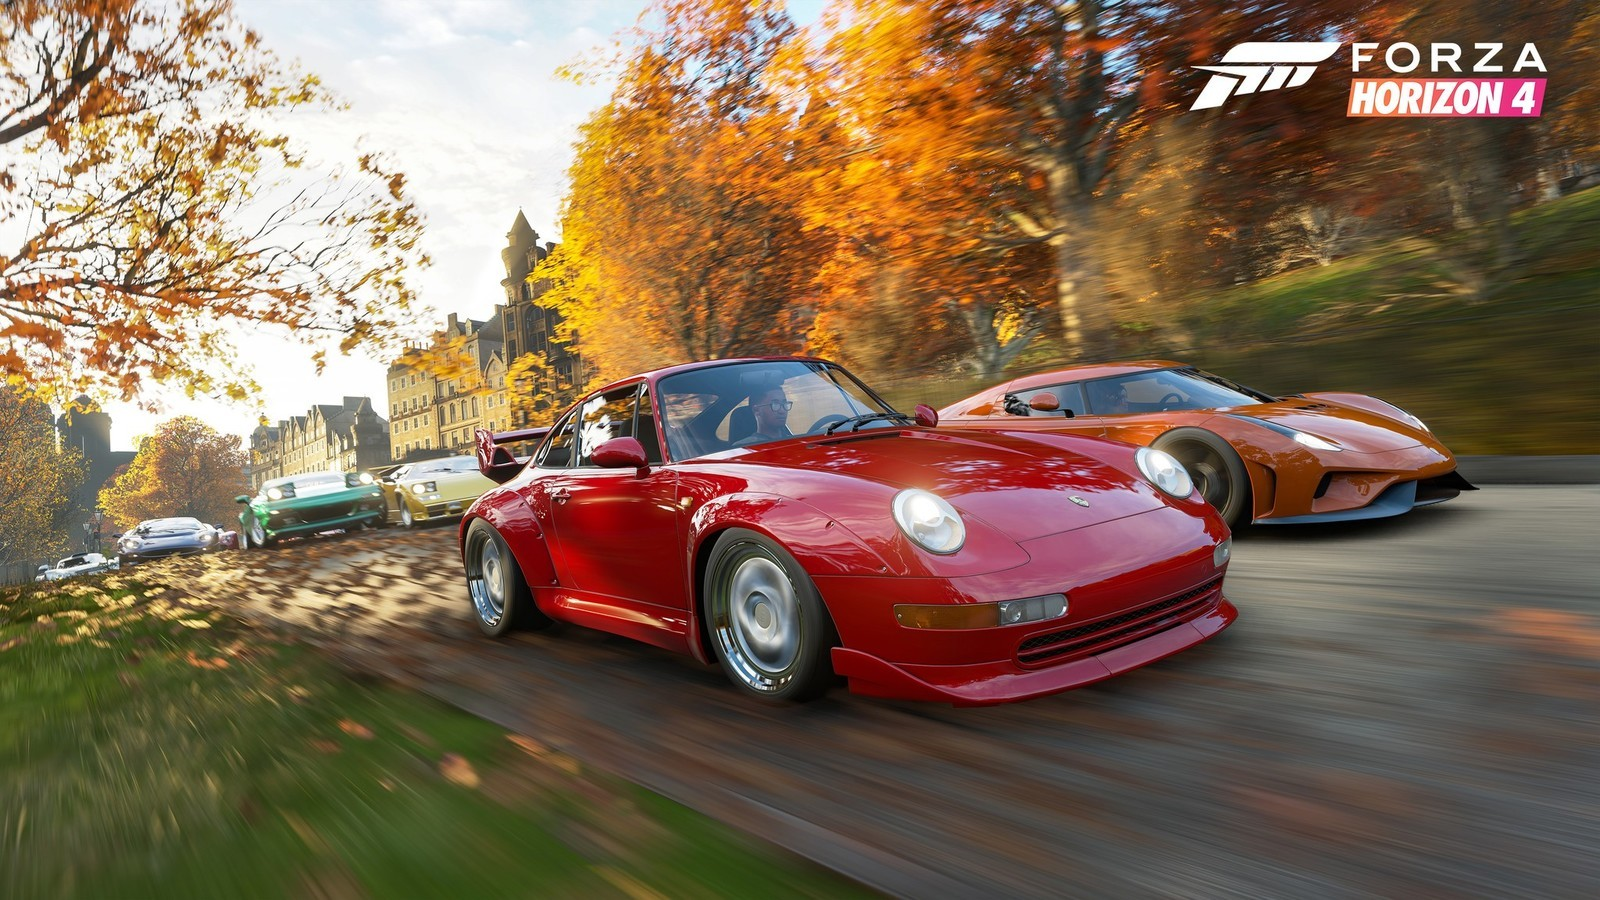 forza horizon 4 pc graphics card performance comparison. Black Bedroom Furniture Sets. Home Design Ideas